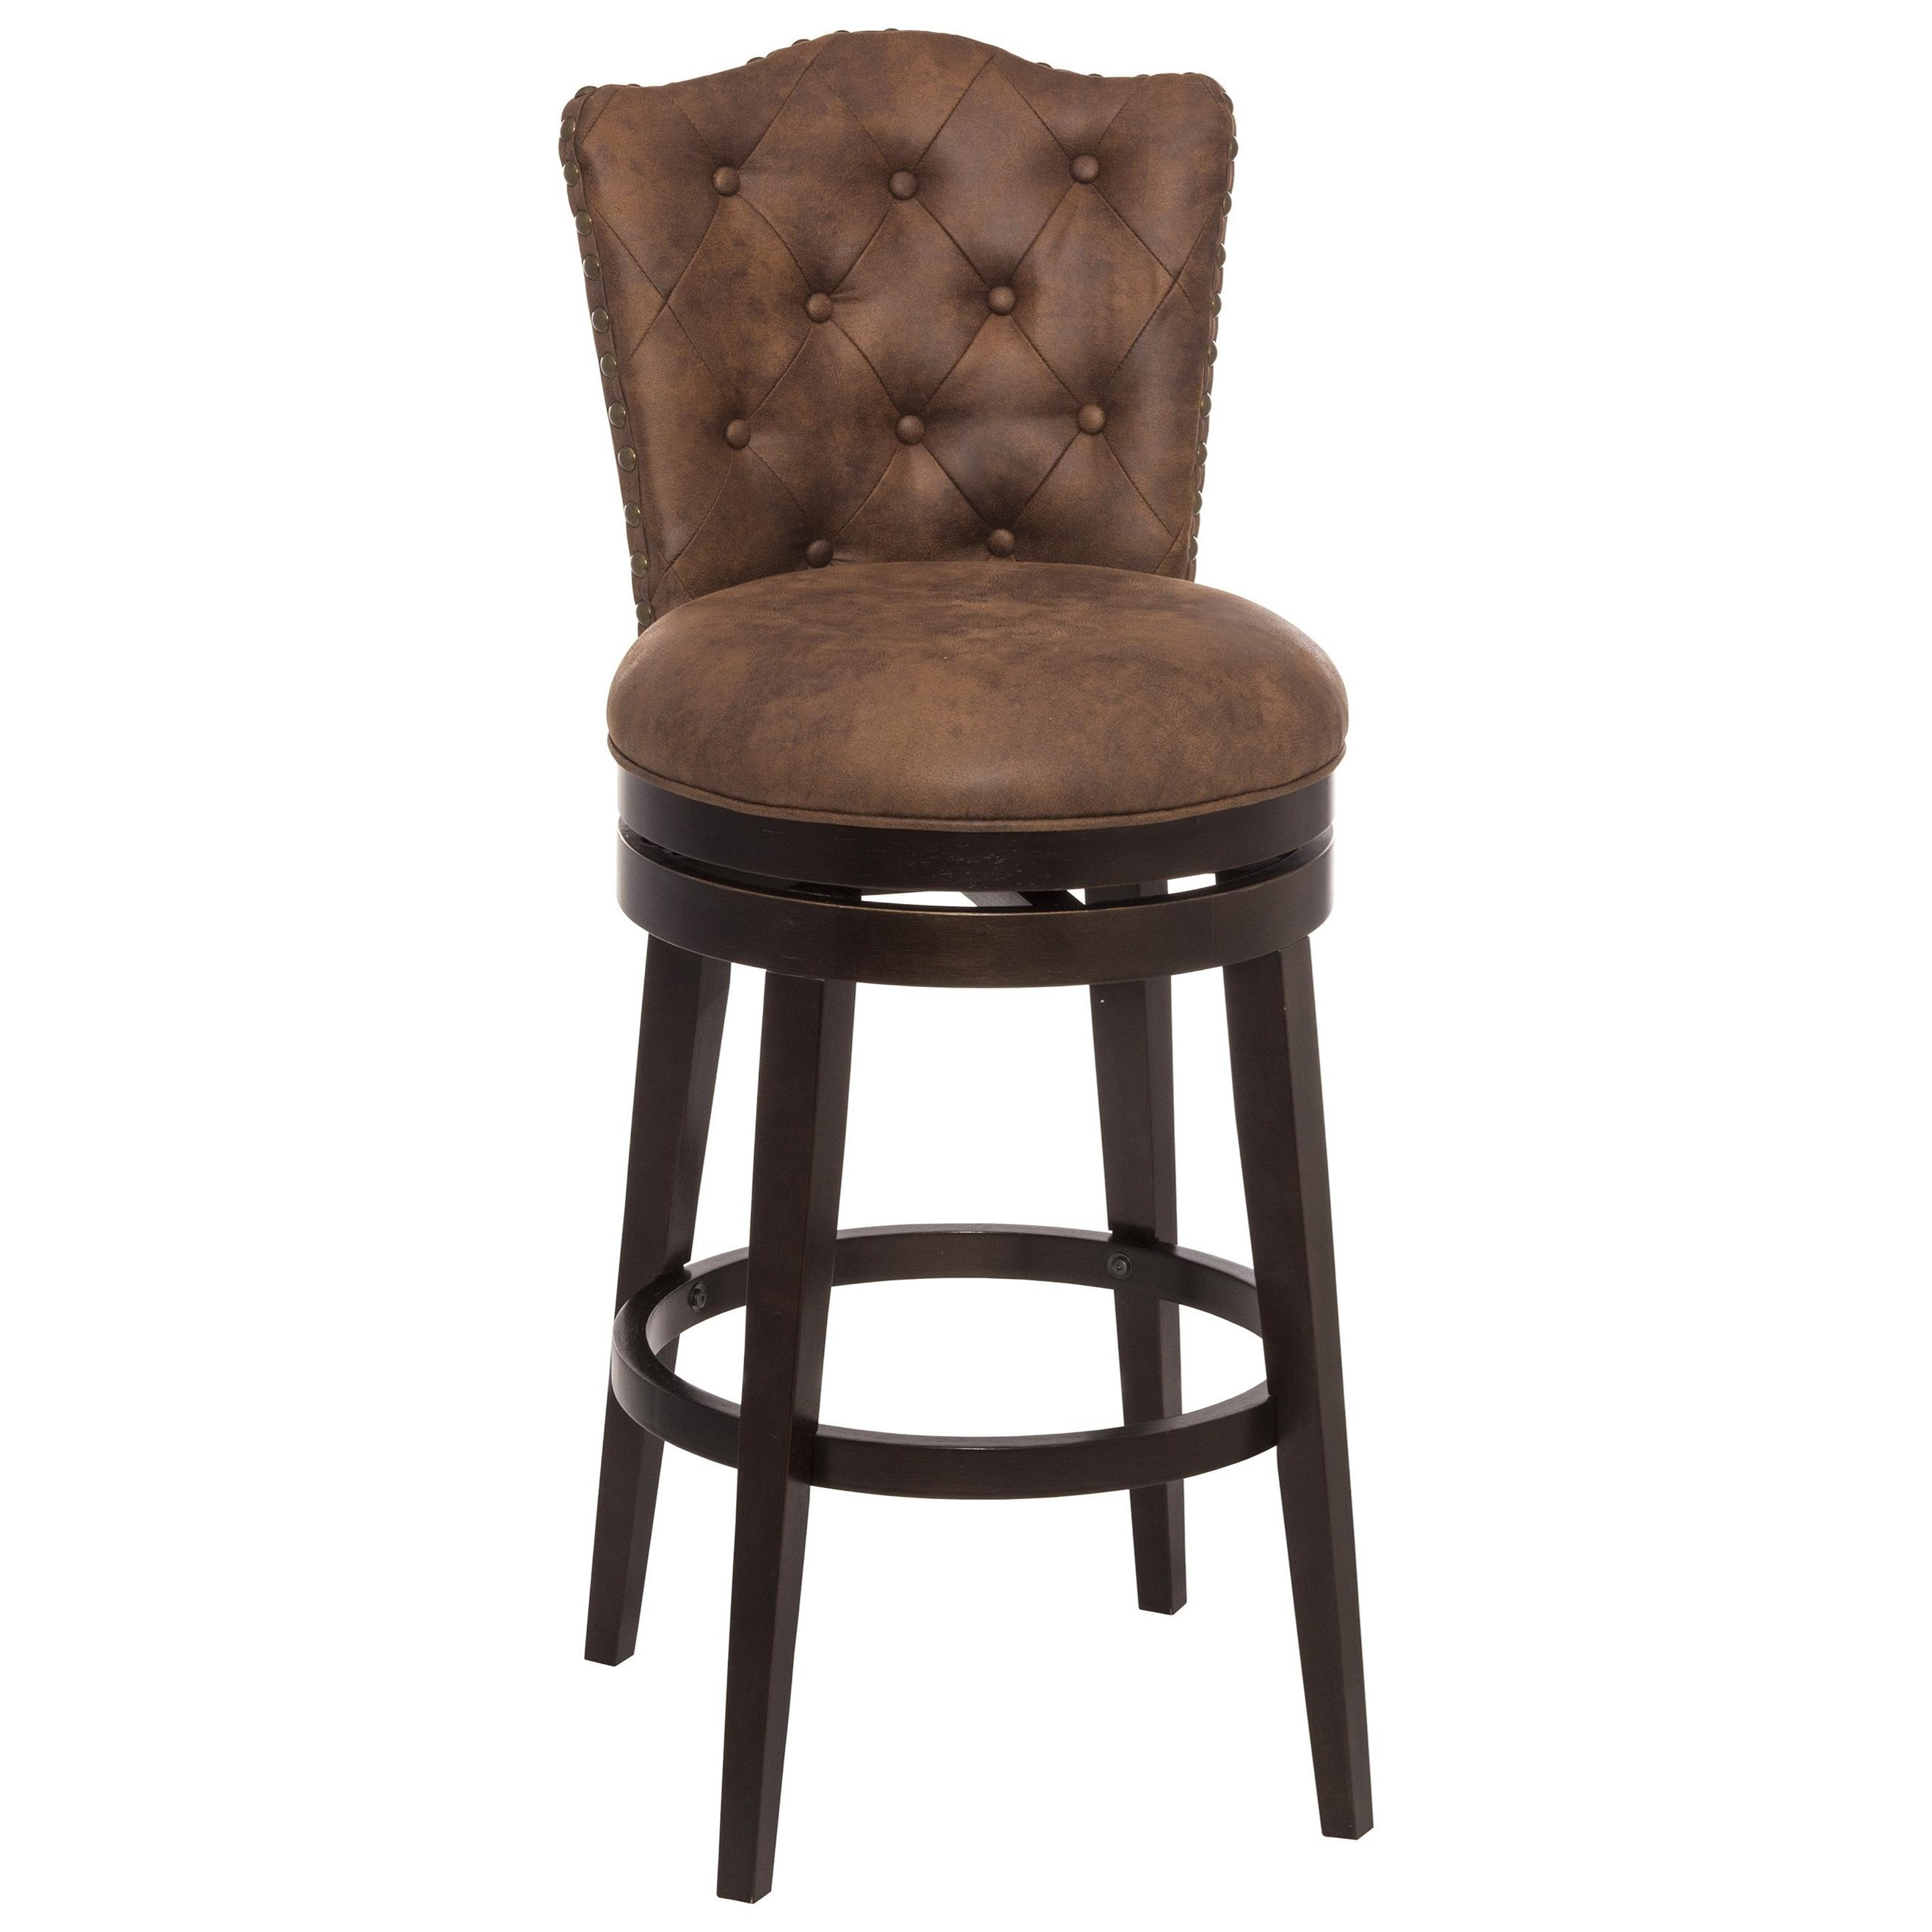 Swivel Counter Stool With Upholstered Seat By Hillsdale